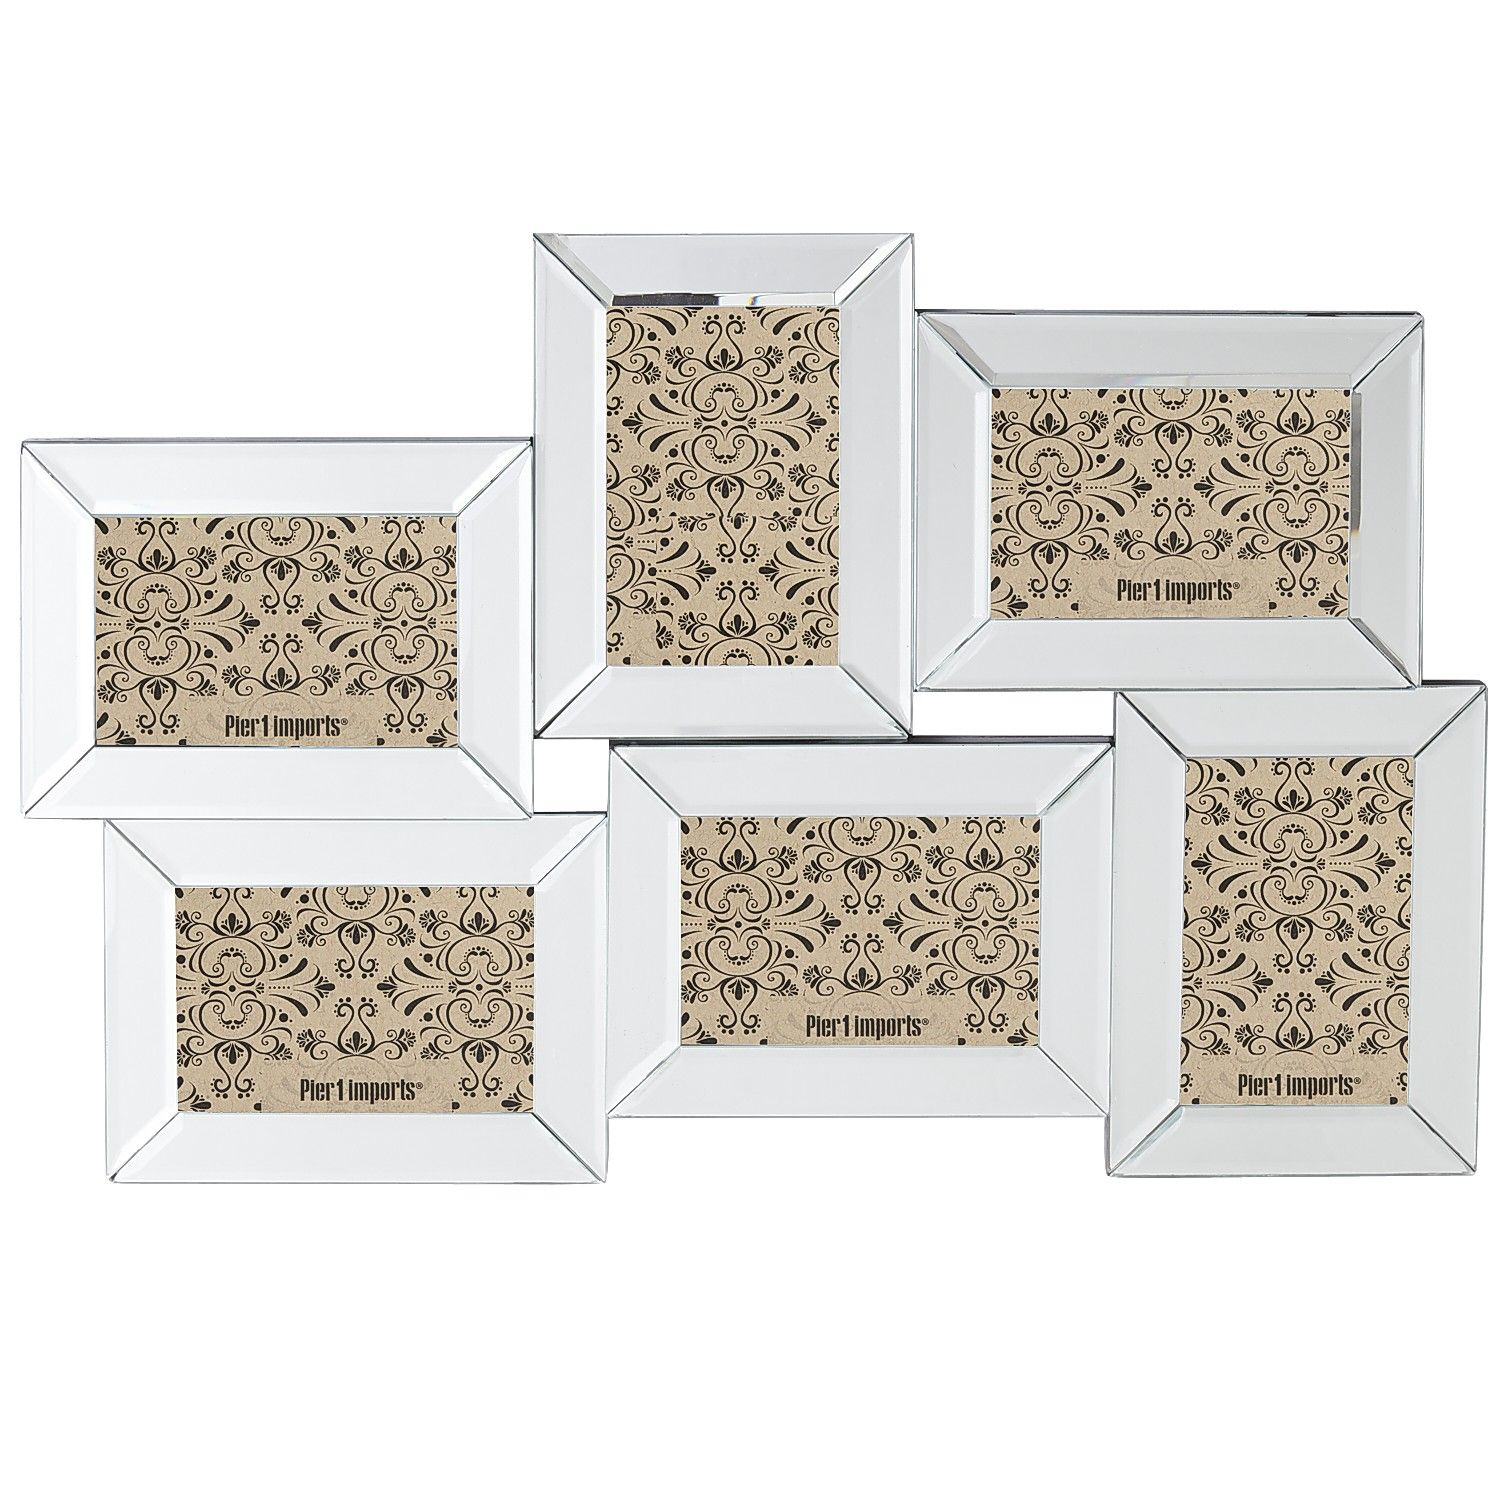 The Cheap Diva: Cut Clutter with Picture Frames from Pier 1 Imports